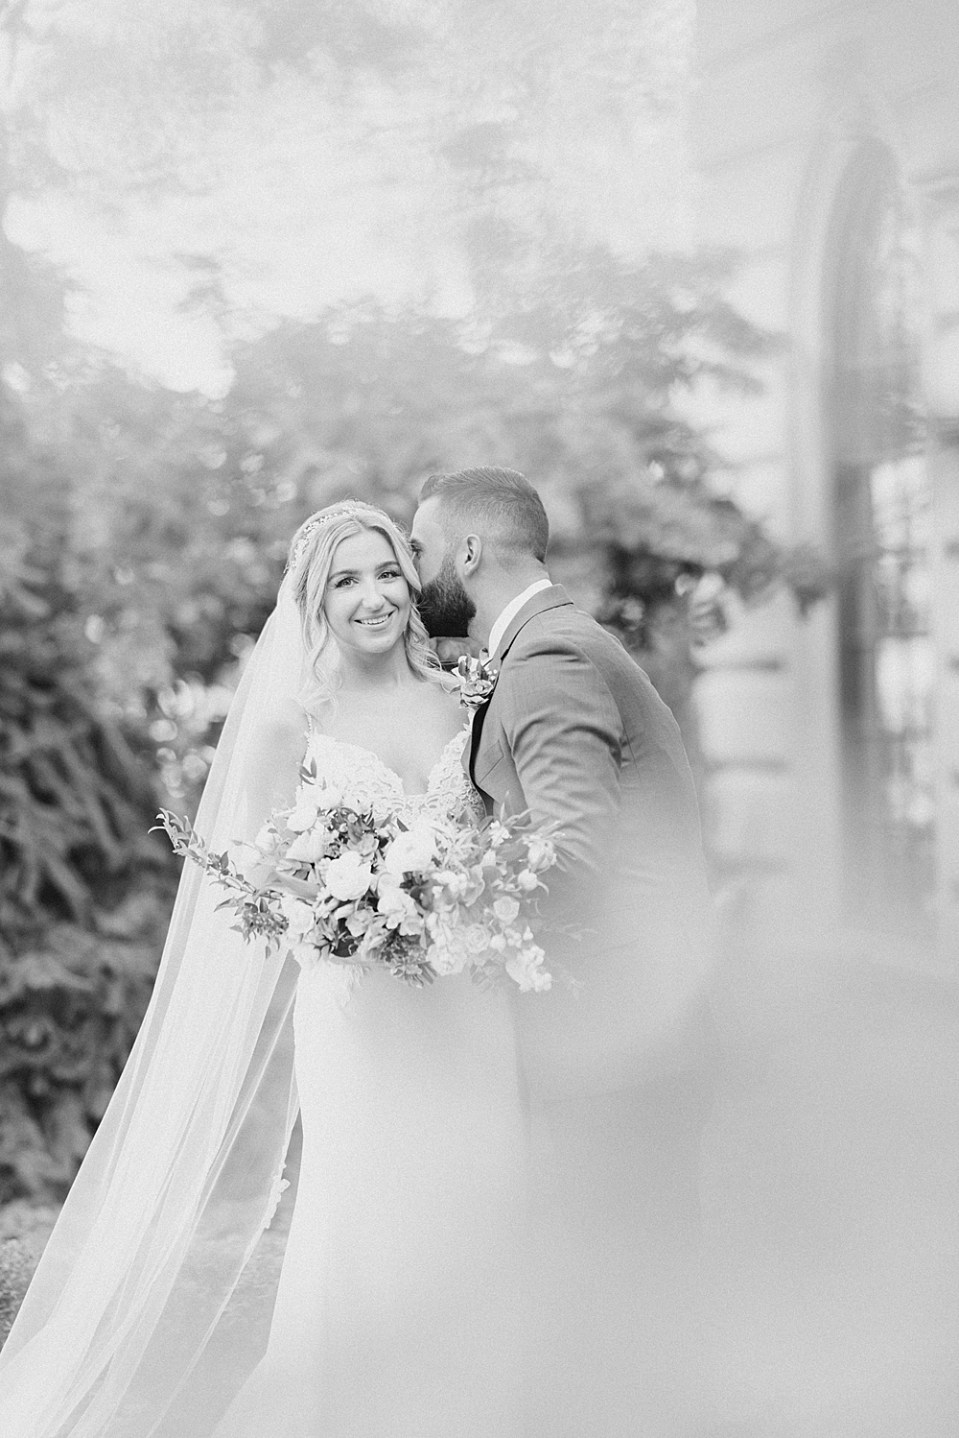 Bride and groom portraits | ashford estate wedding photography | sarah canning photography